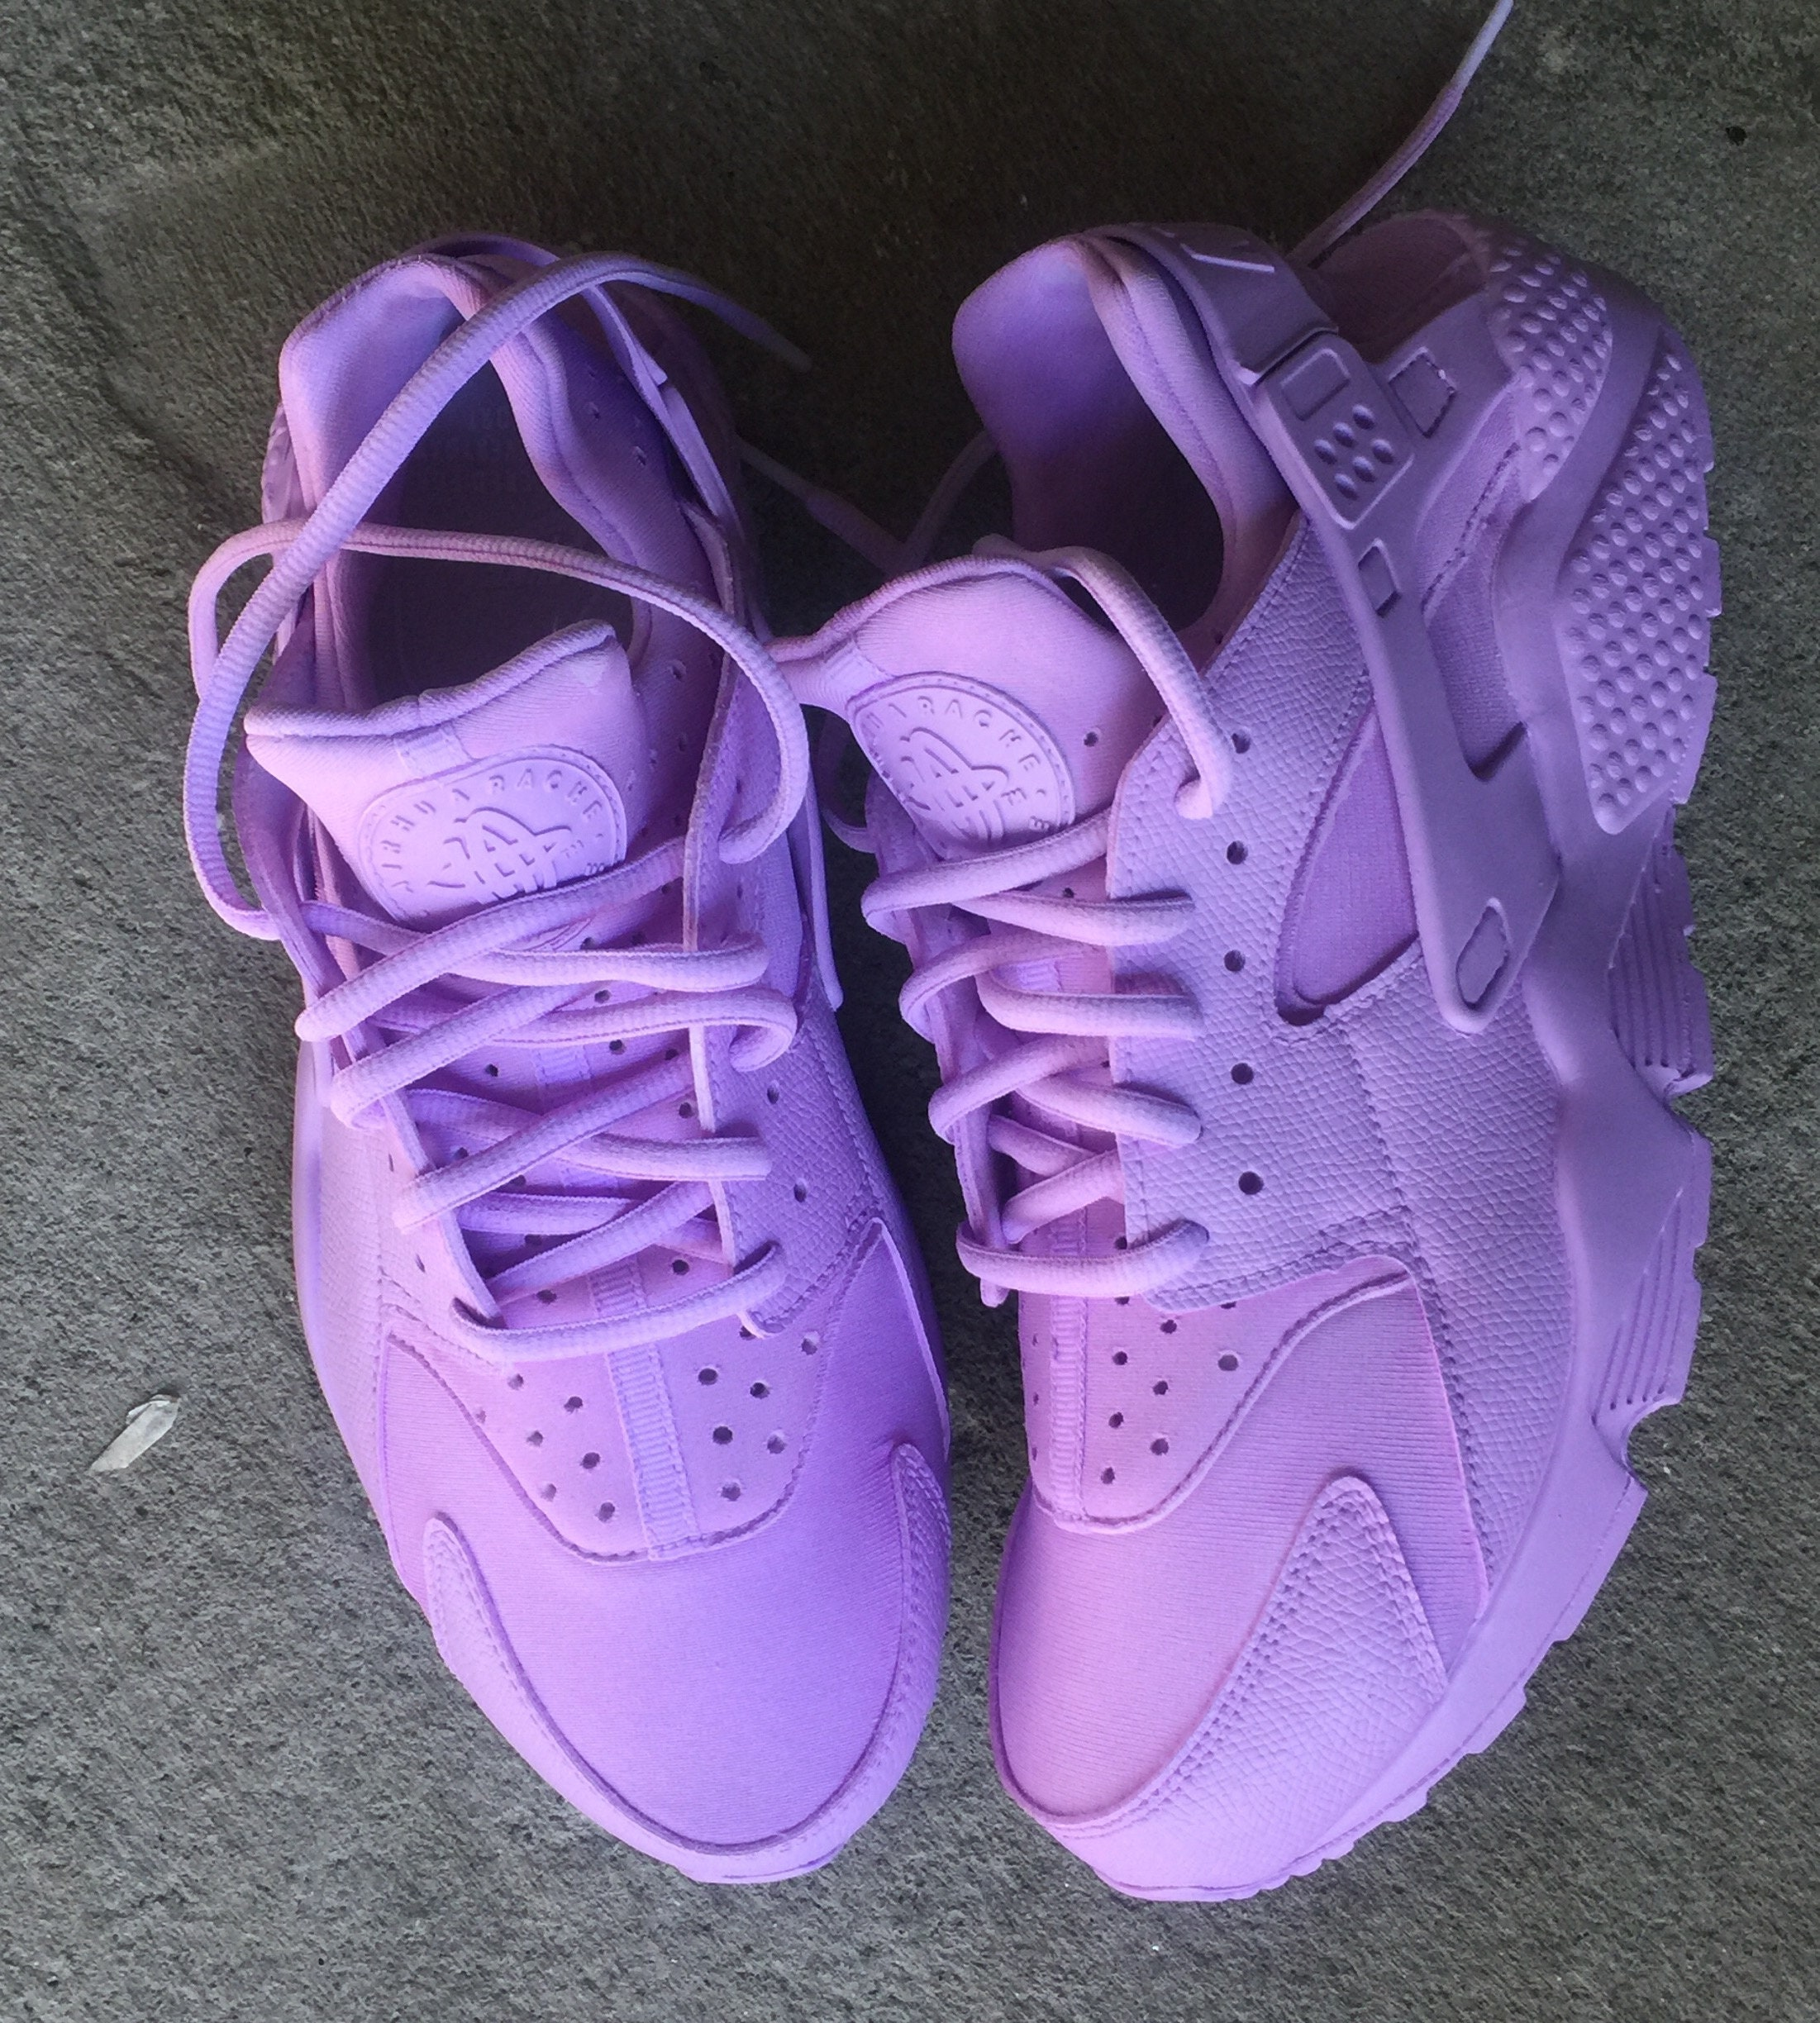 buy online 0a606 a5565 Lavender Purple Nike Huarache Customs. 1